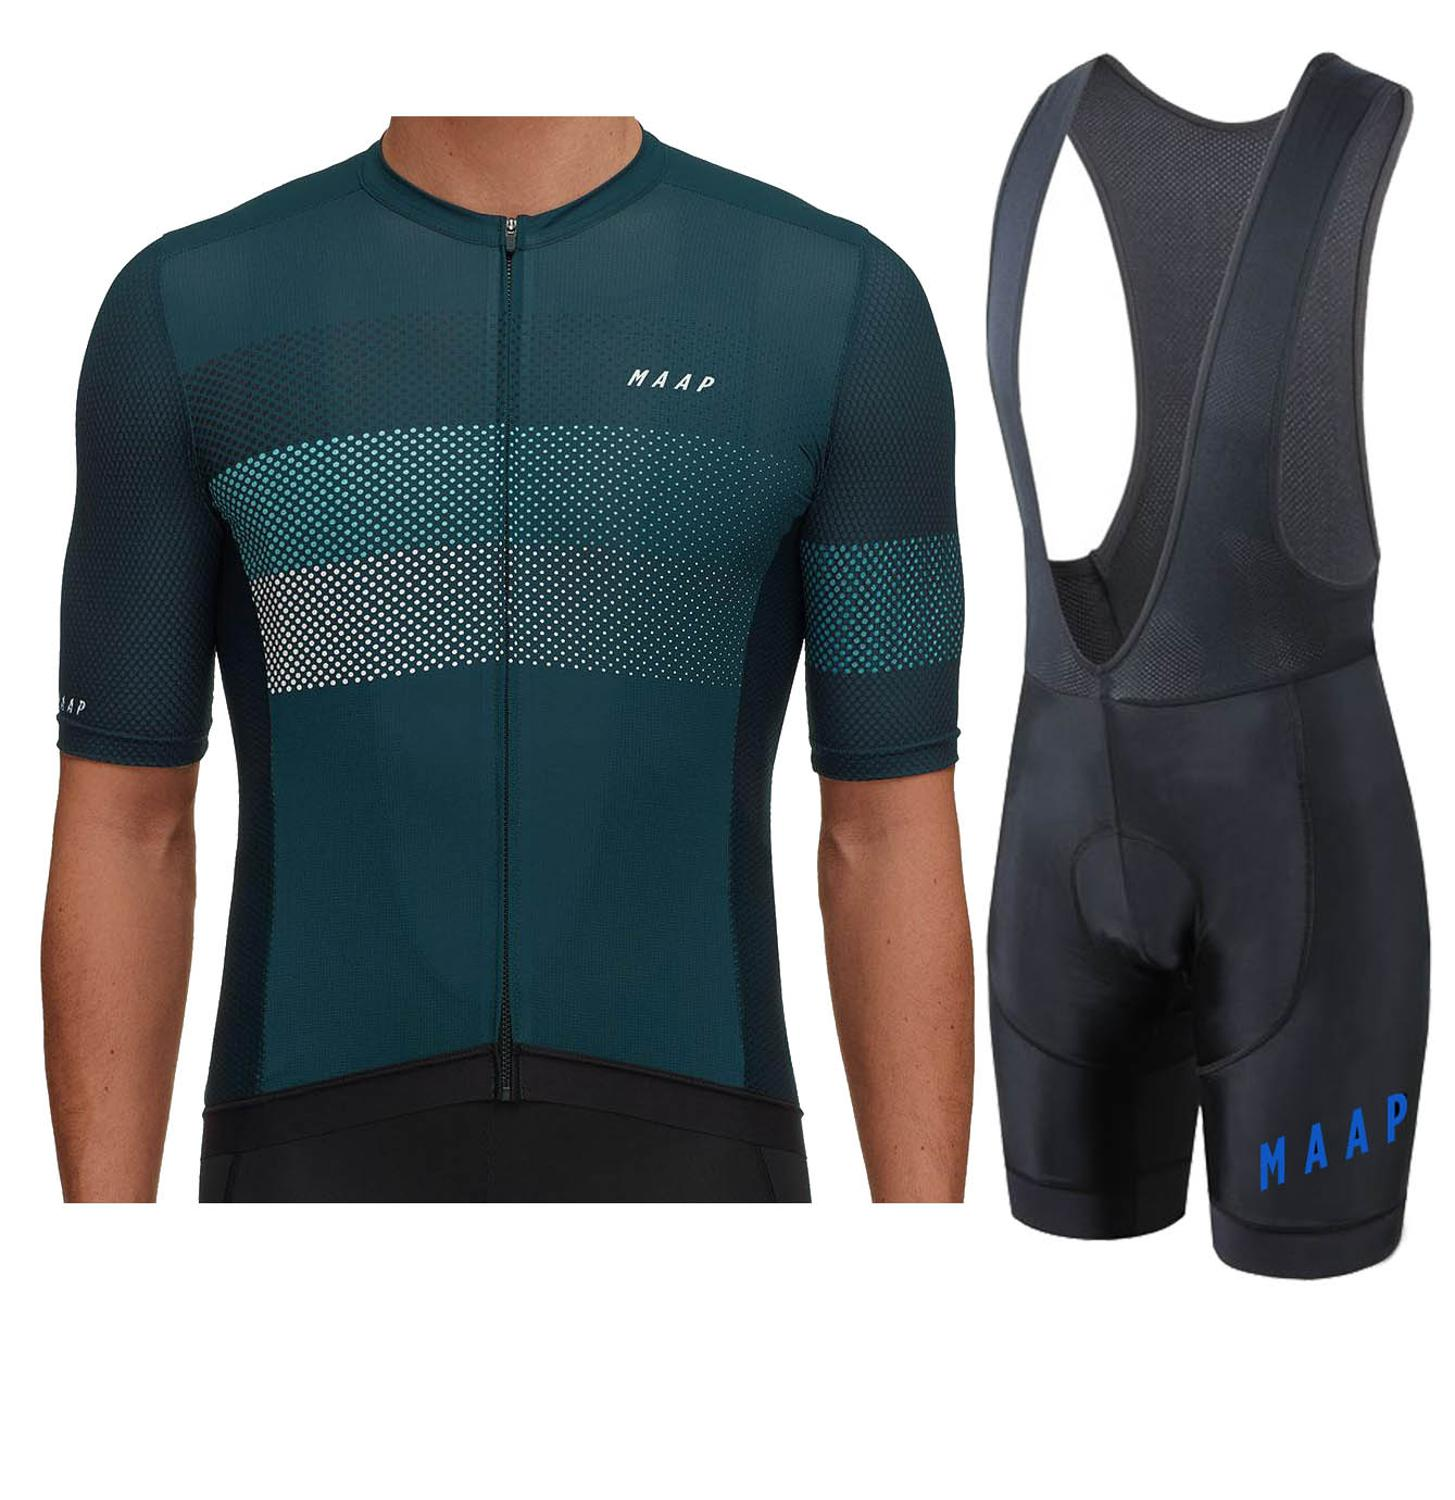 2019 New Map Pro Fit Short Sleeve Cycling Jerseys And Bib Shorrts Set High Quality Bicycle Equipment ALL NEW GEL PAD 4.0 Bib Kit